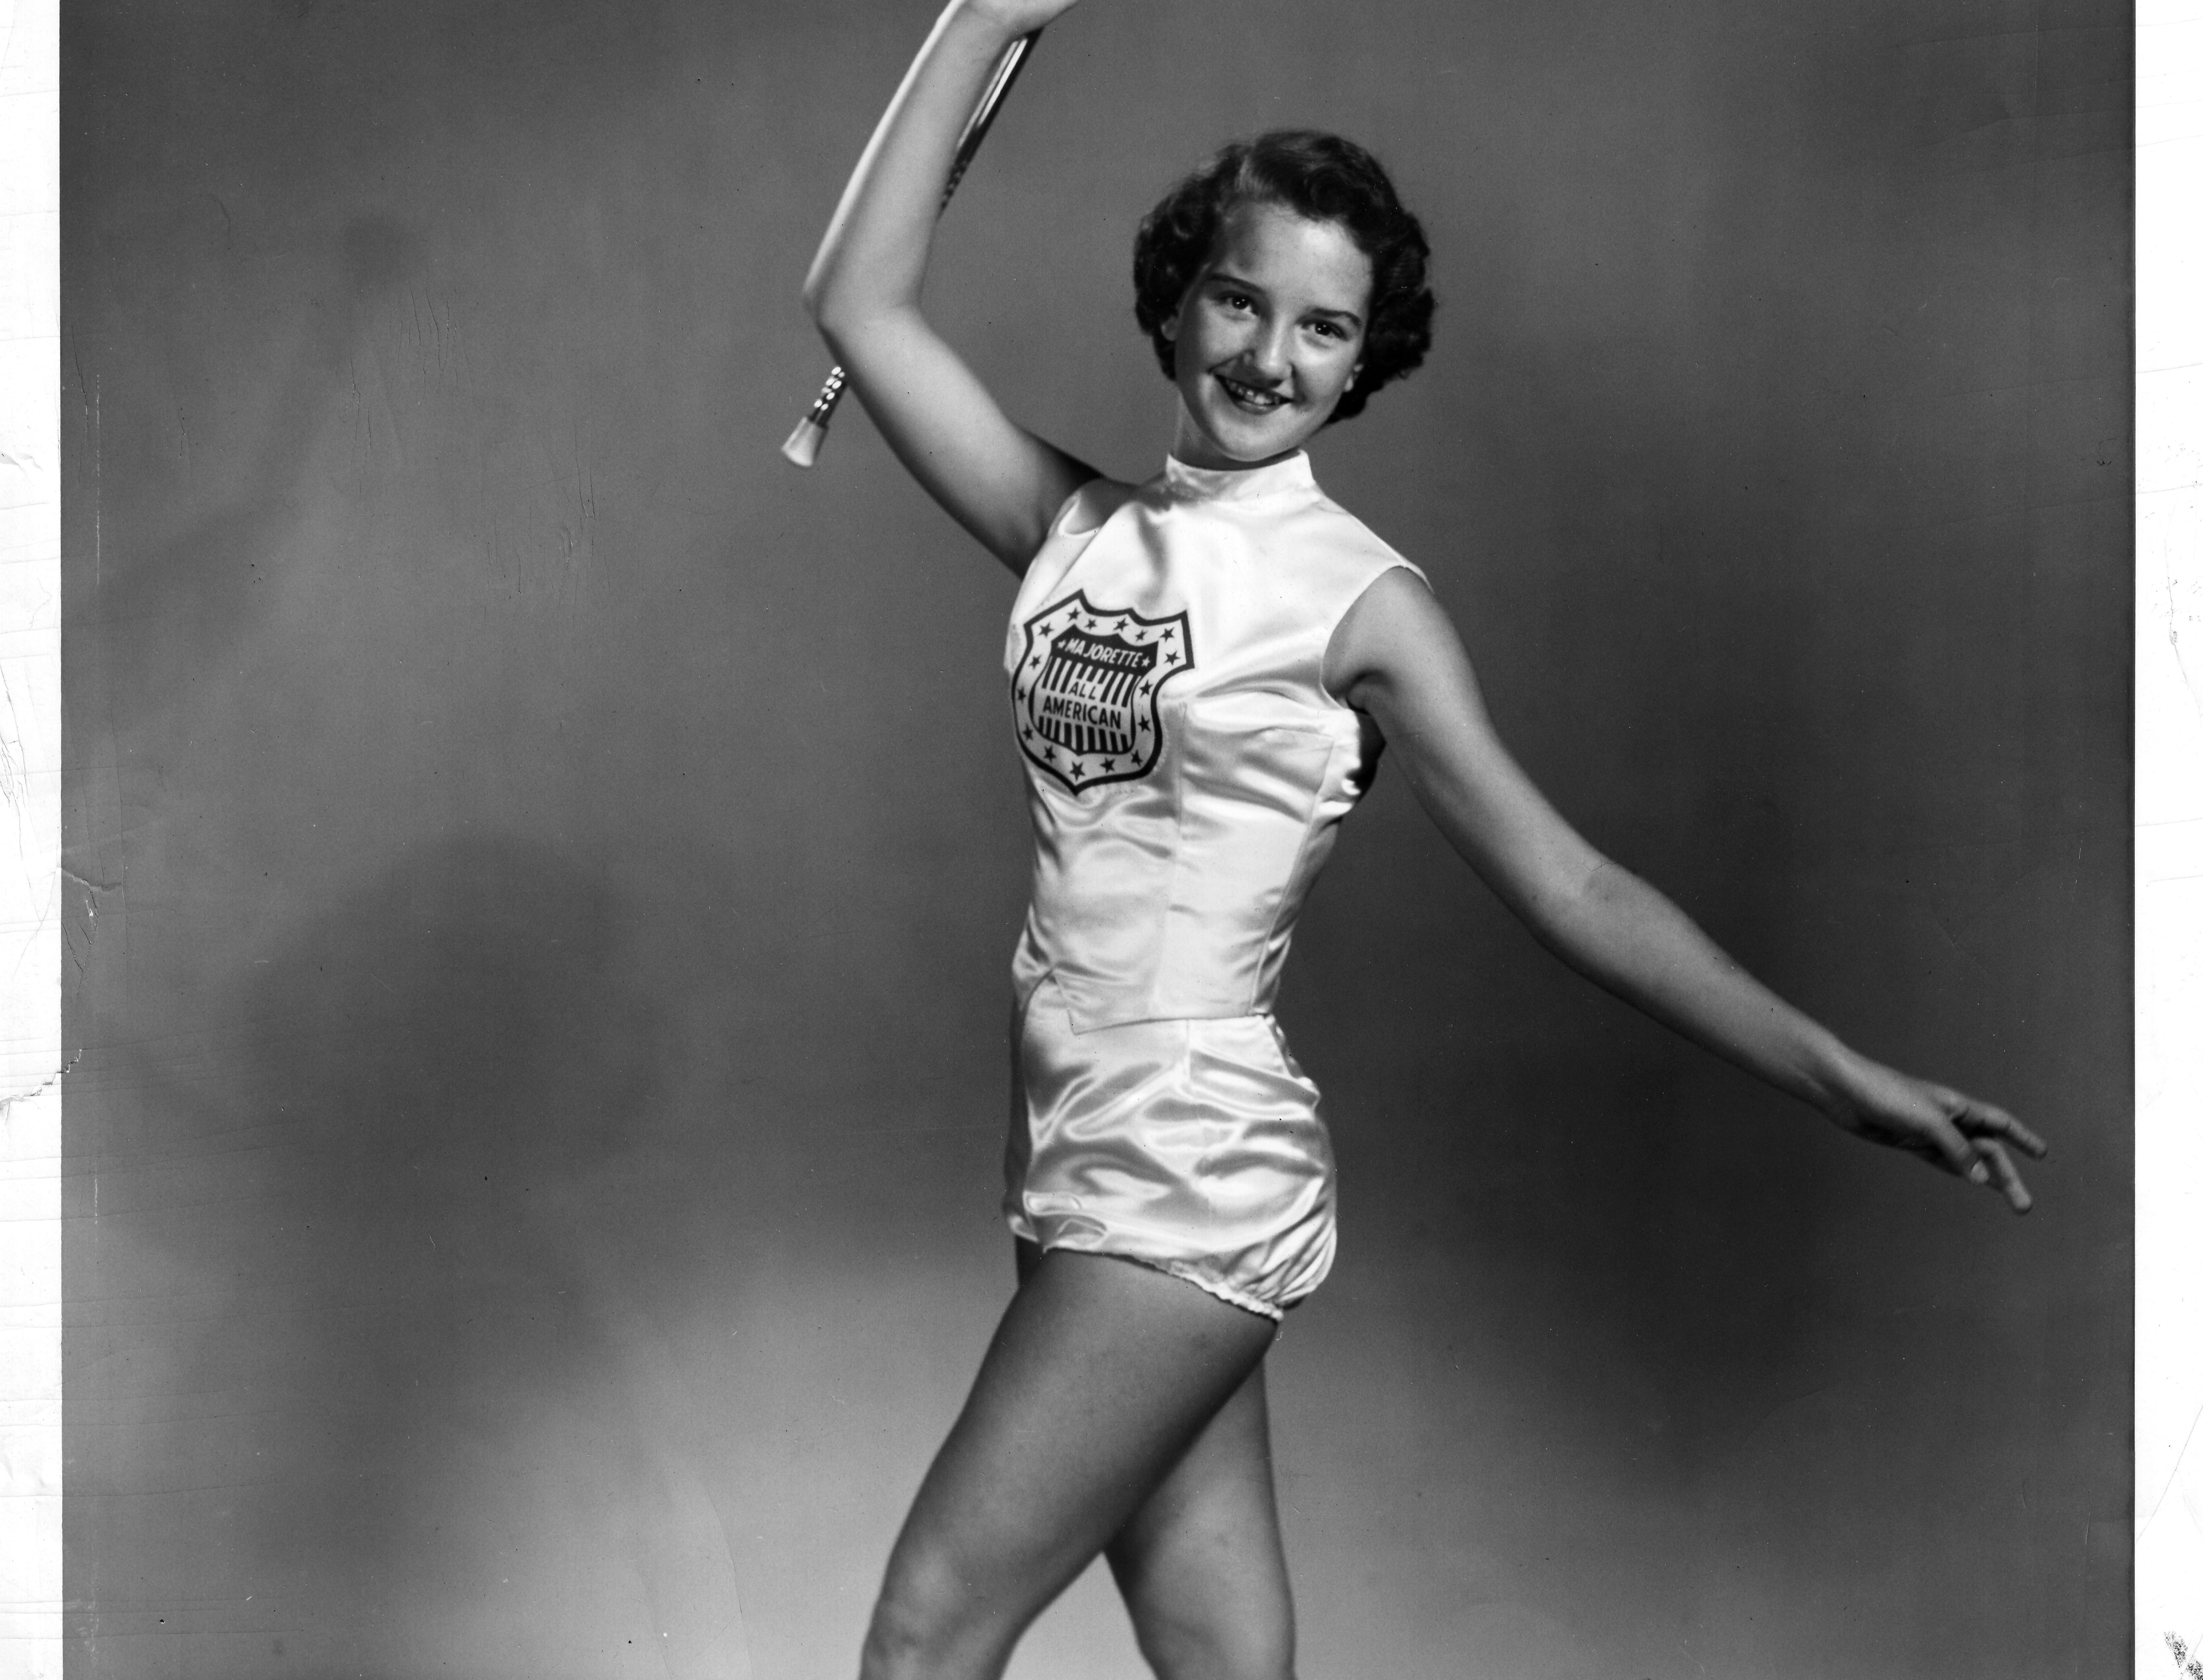 Baton twirler Claudette Riley. She was a 1980 inductee into the Tennessee Sports Hall of Fame.